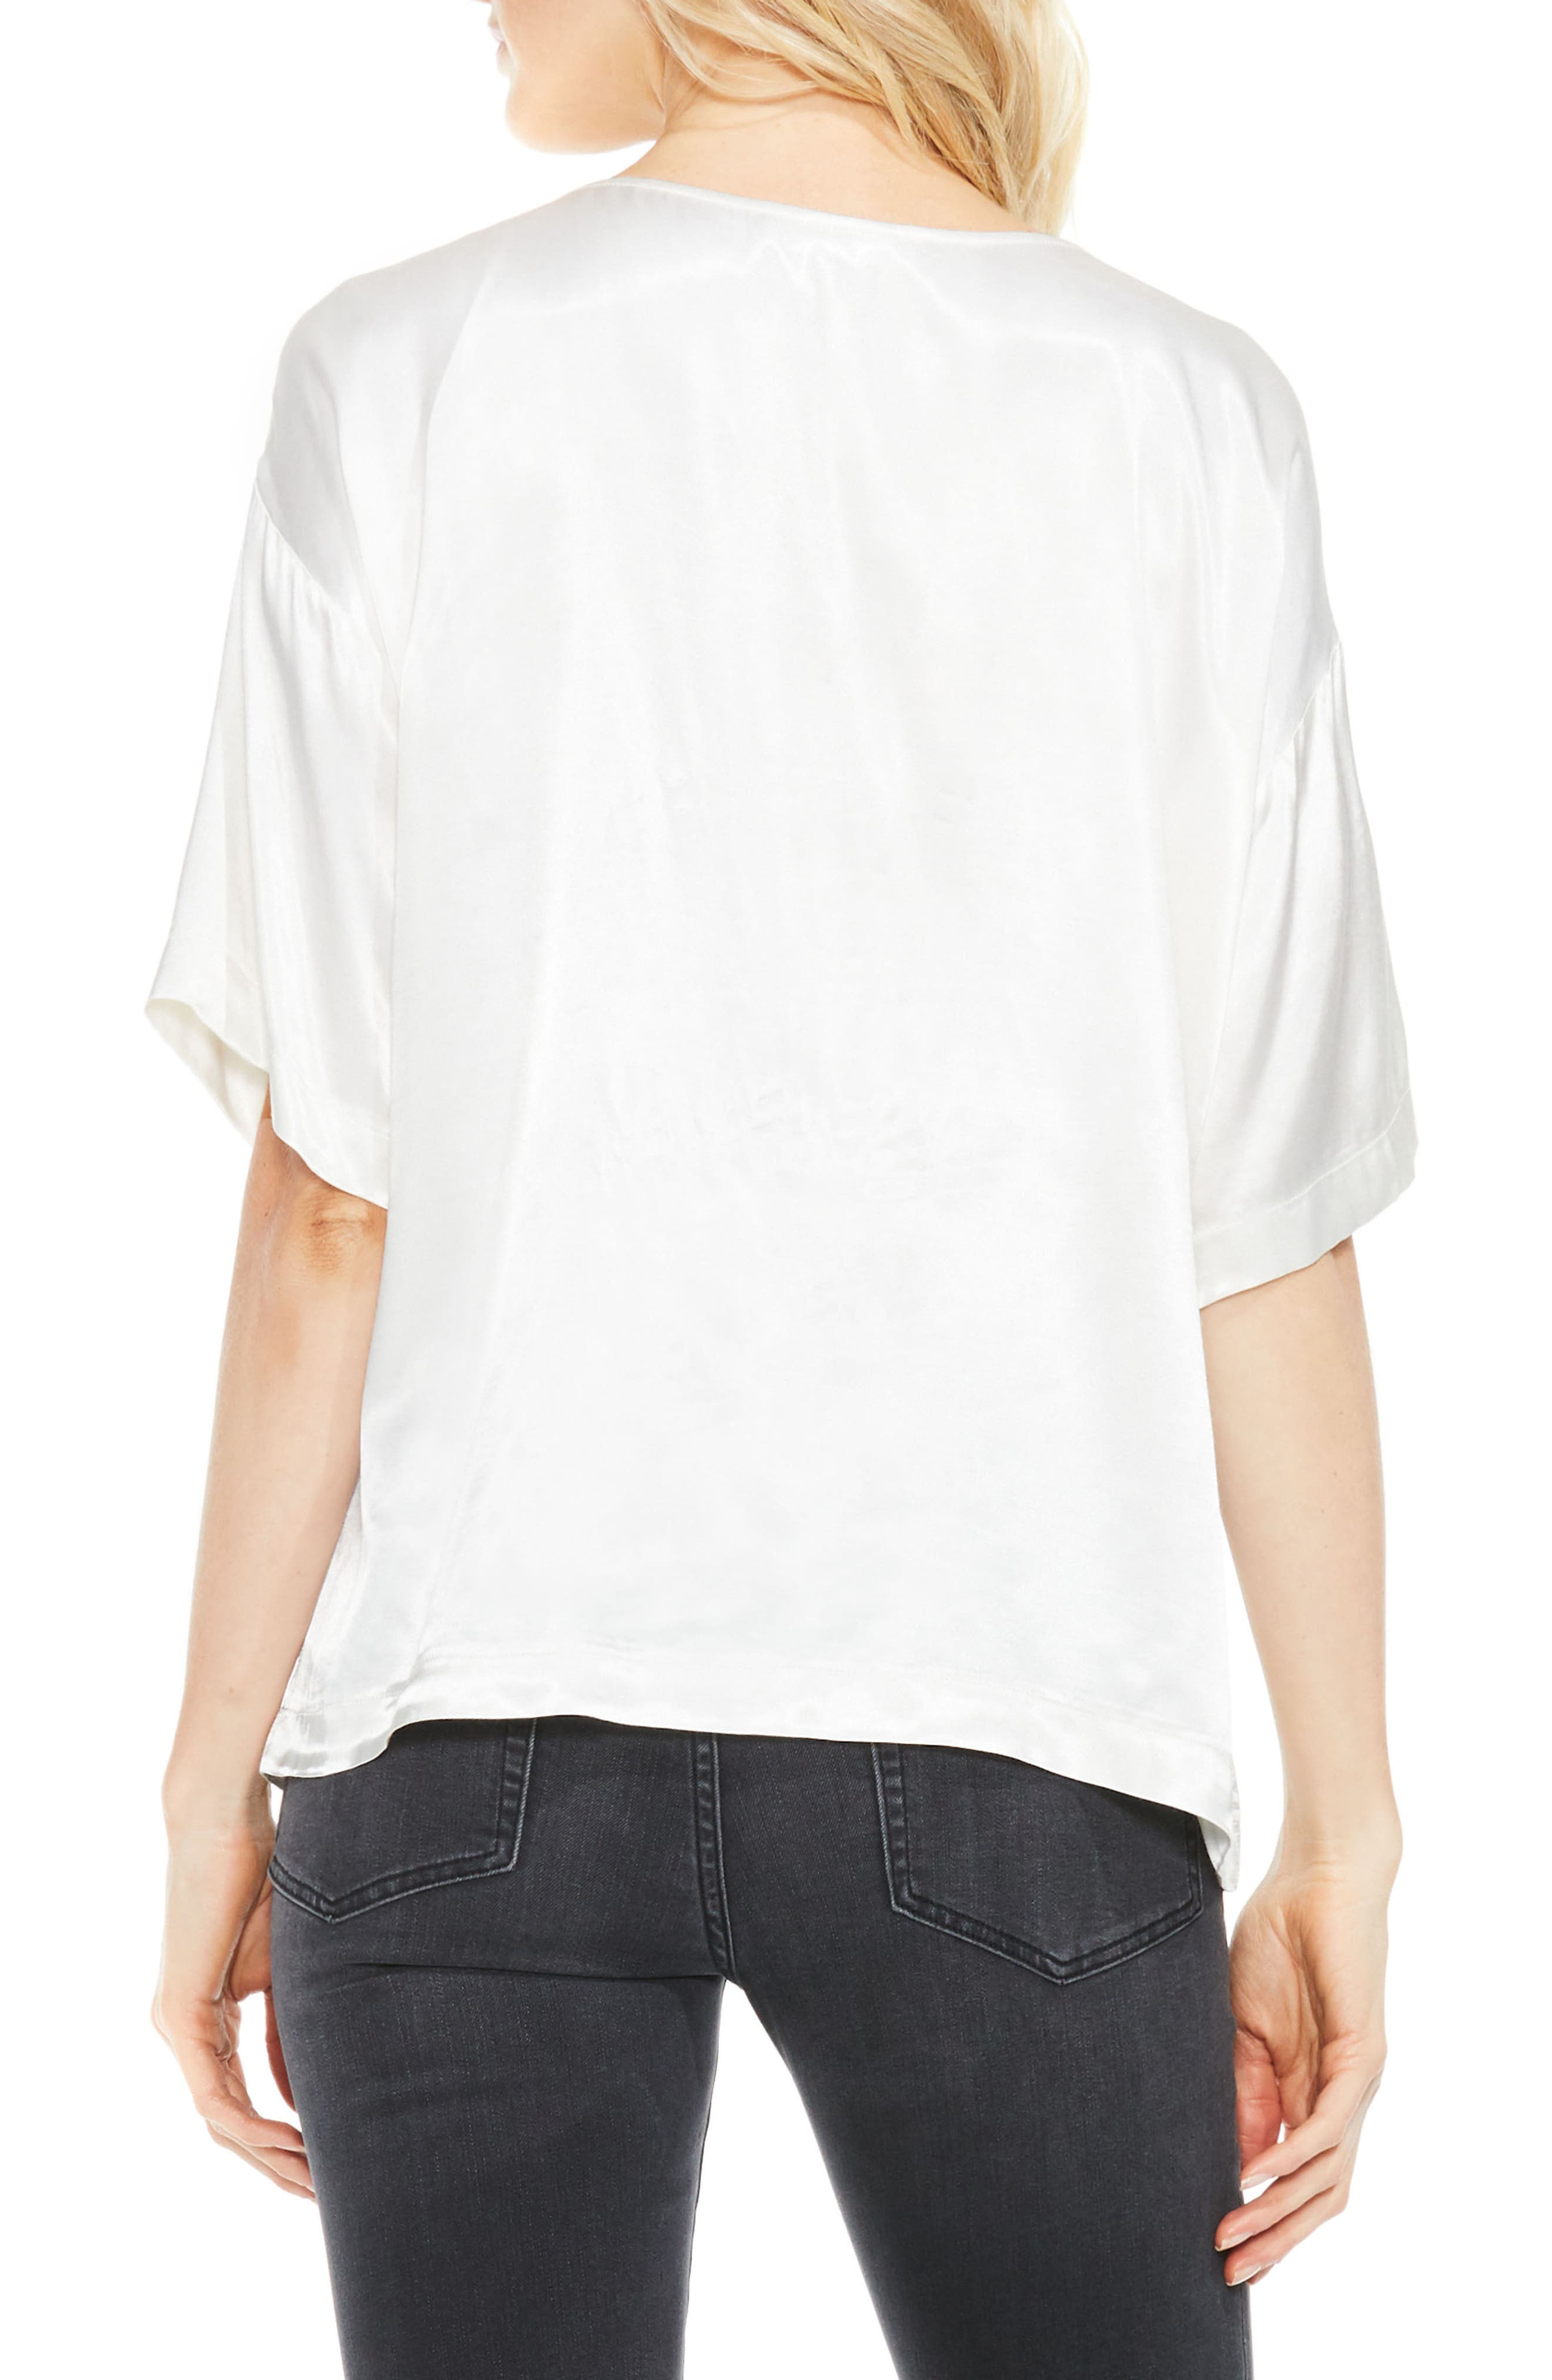 Alternate Image 2  - Two by Vince Camuto Satin Tee